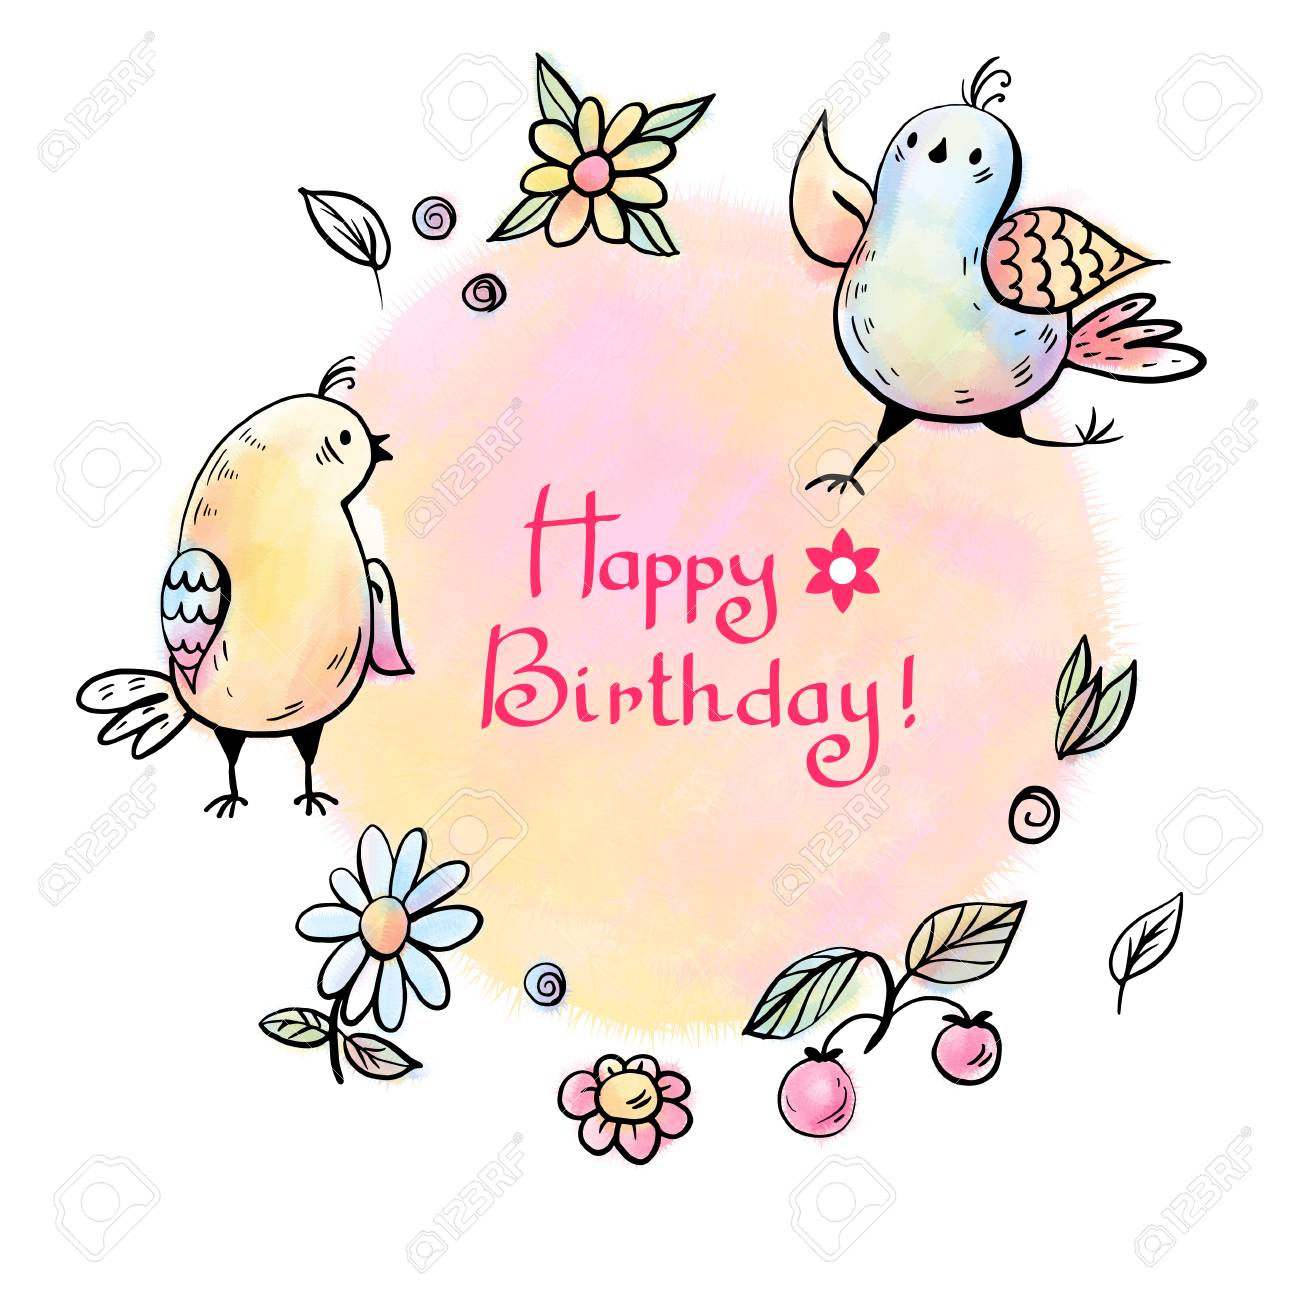 Greeting card happy birthday with birds and flowers vector greeting card happy birthday with birds and flowers vector illustration izmirmasajfo